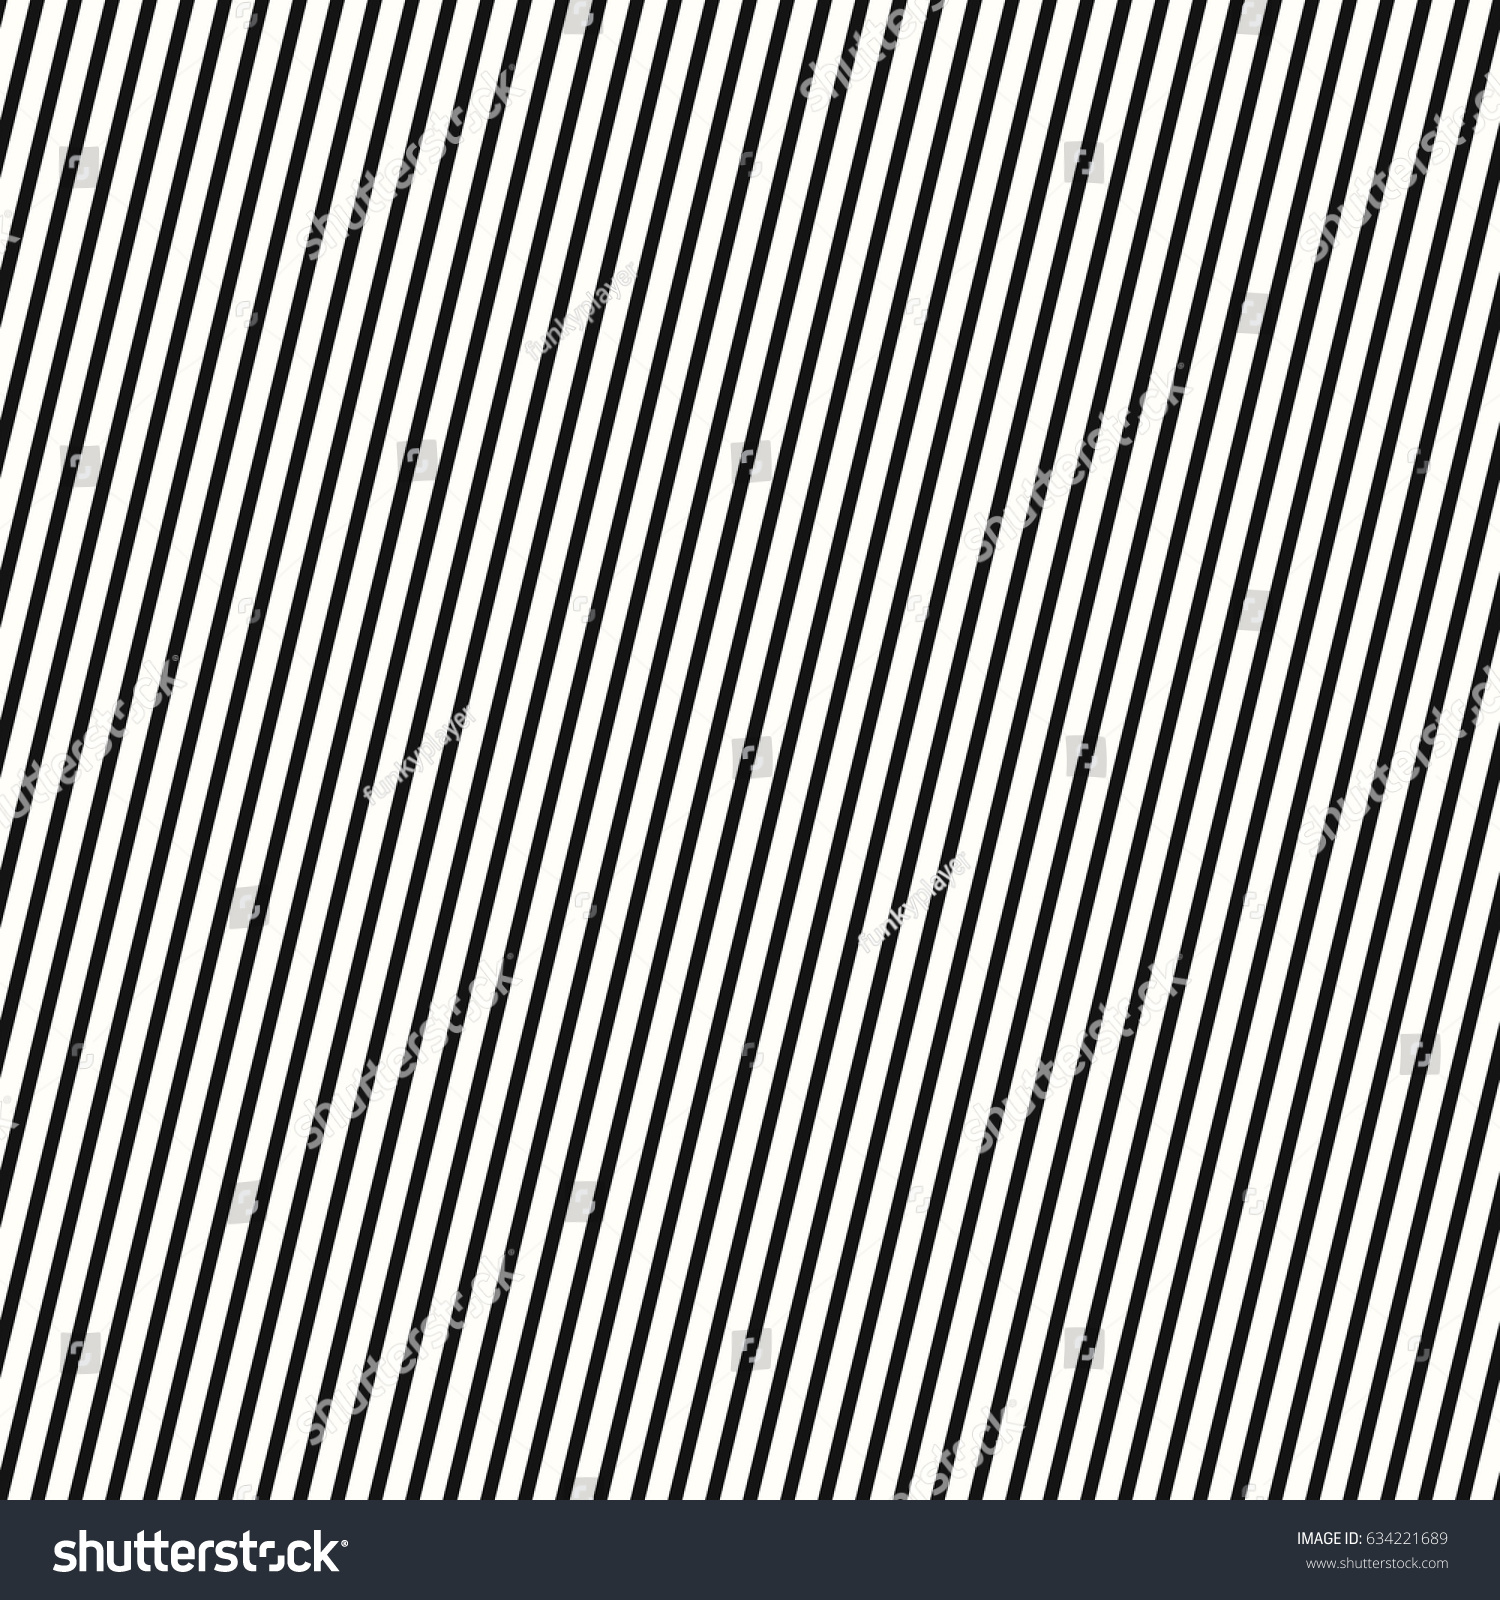 And black diagonal stripes background seamless background or wallpaper - Black Diagonal Lines Background Striped Wallpaper Seamless Surface Pattern Design With Symmetrical Linear Ornament